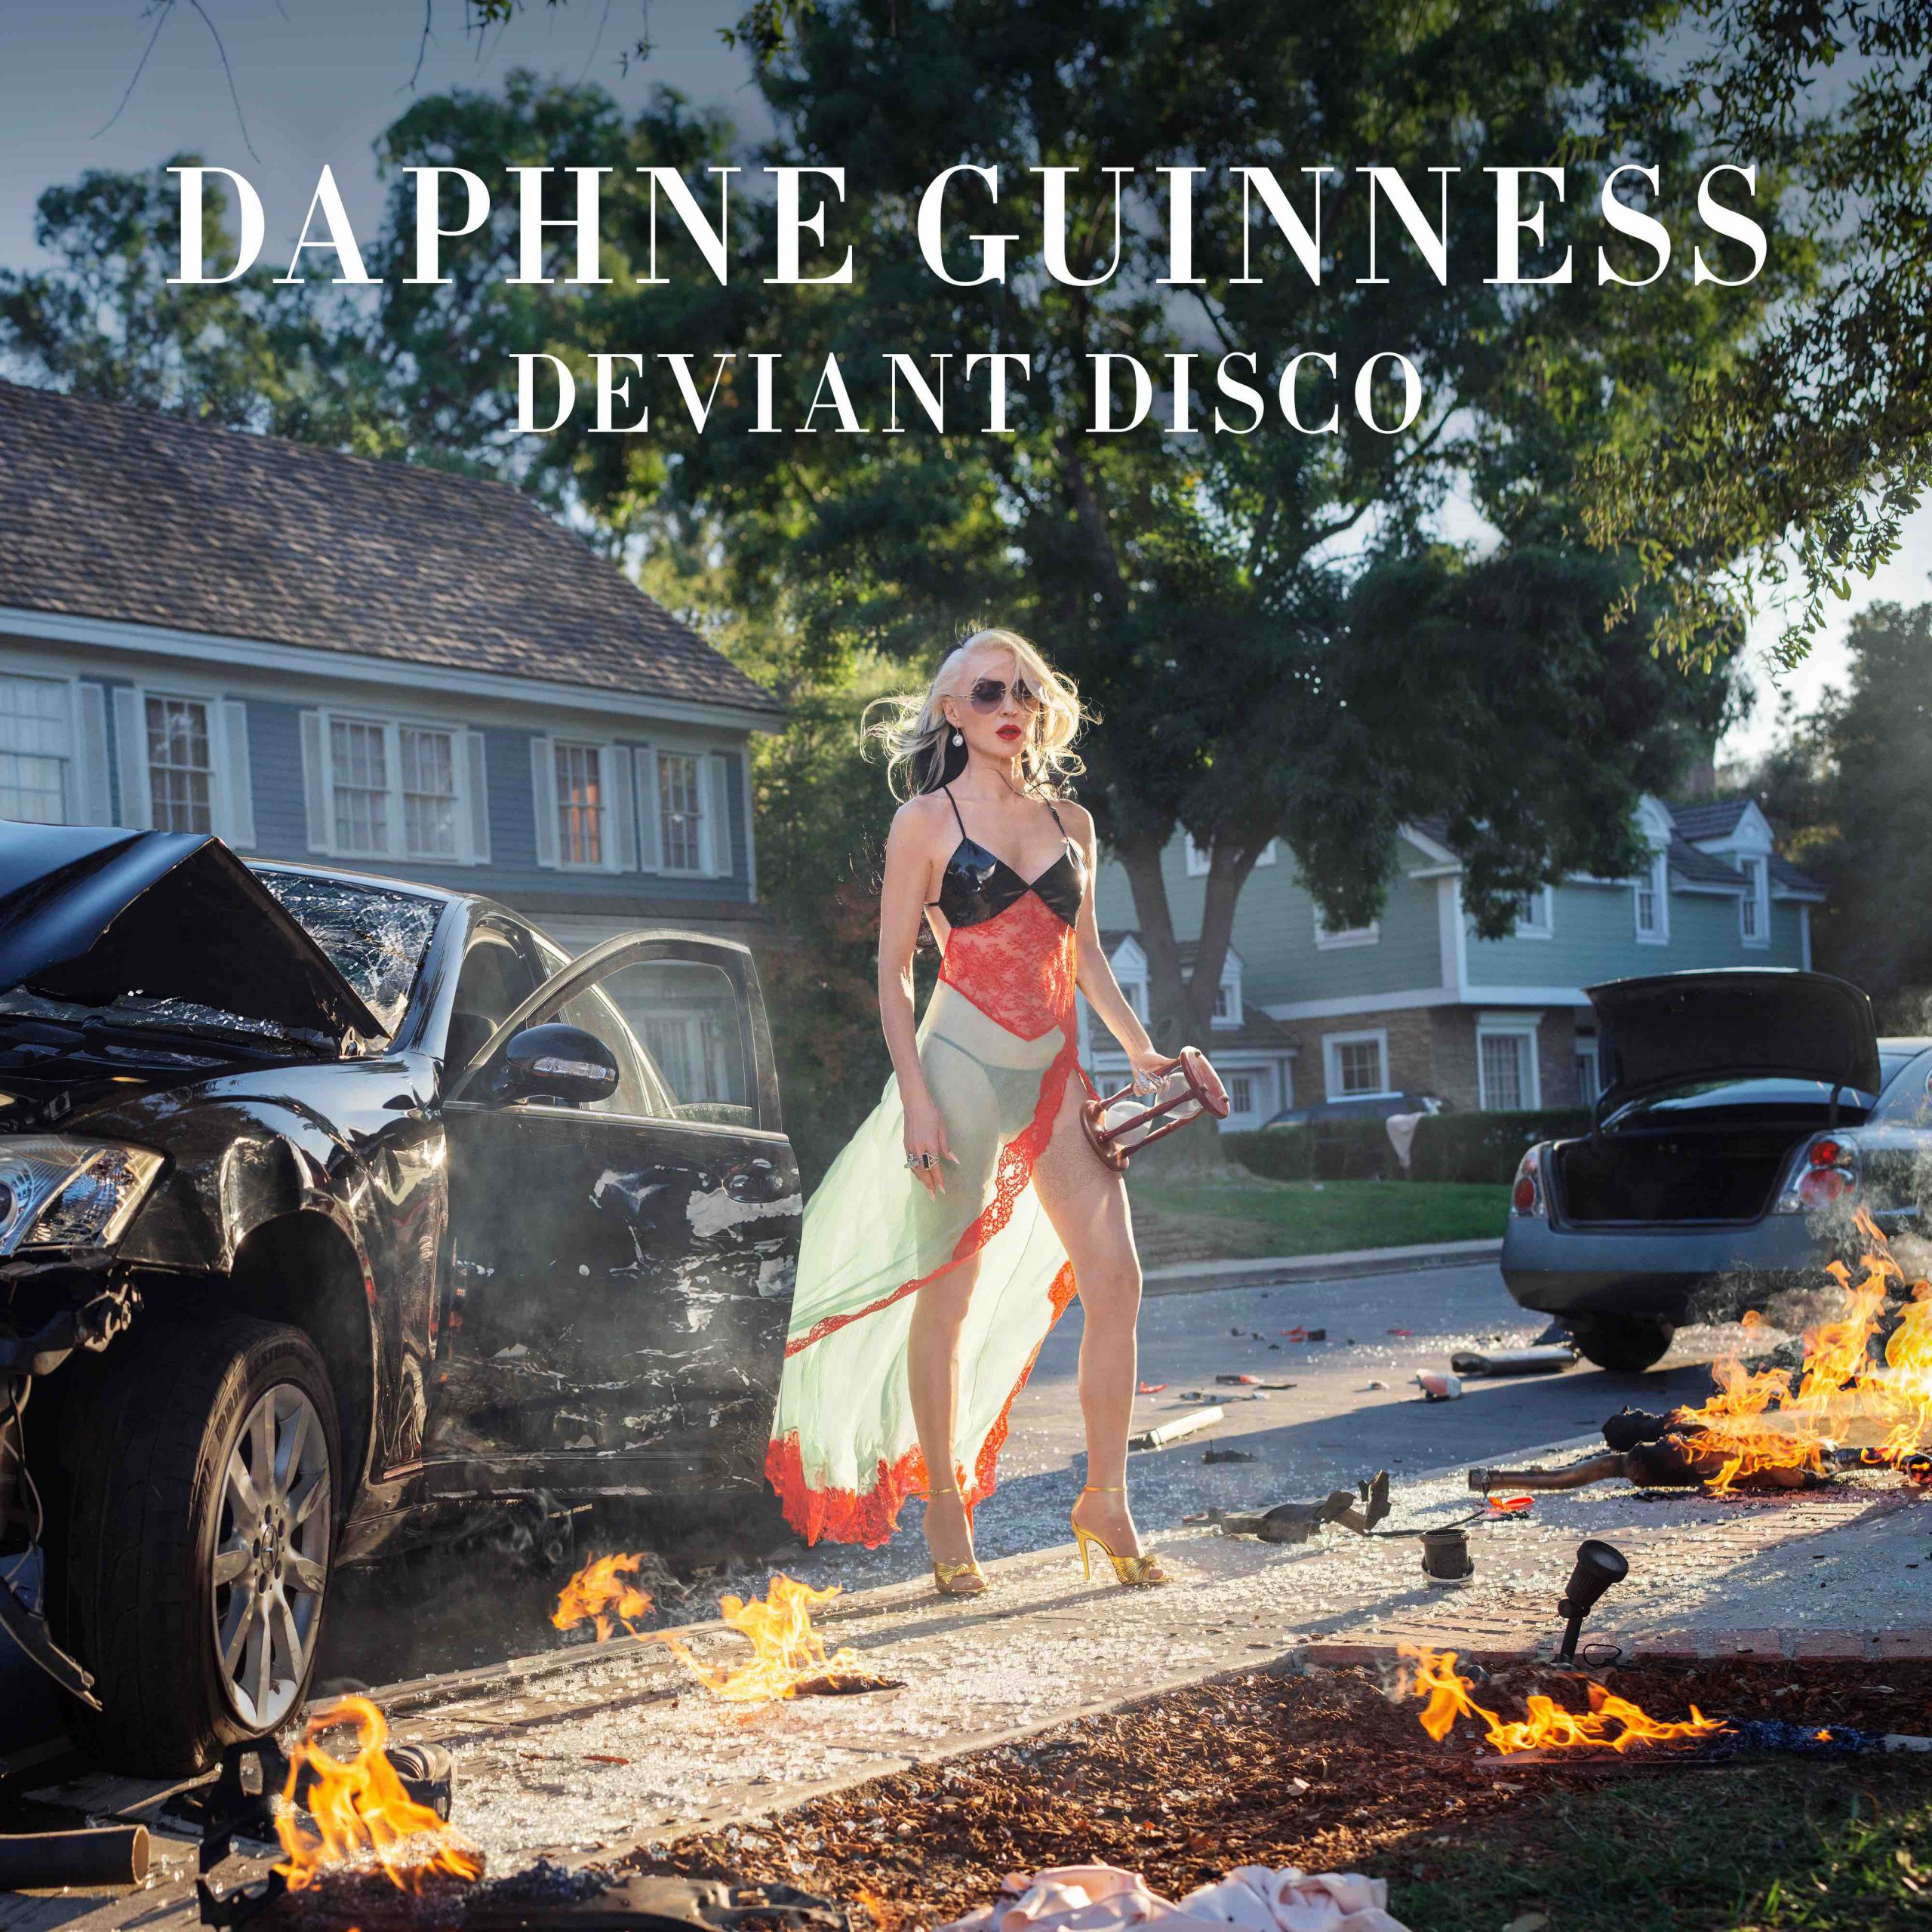 DAPHNE GUINNESS today releases a new single, 'Deviant Disco ...